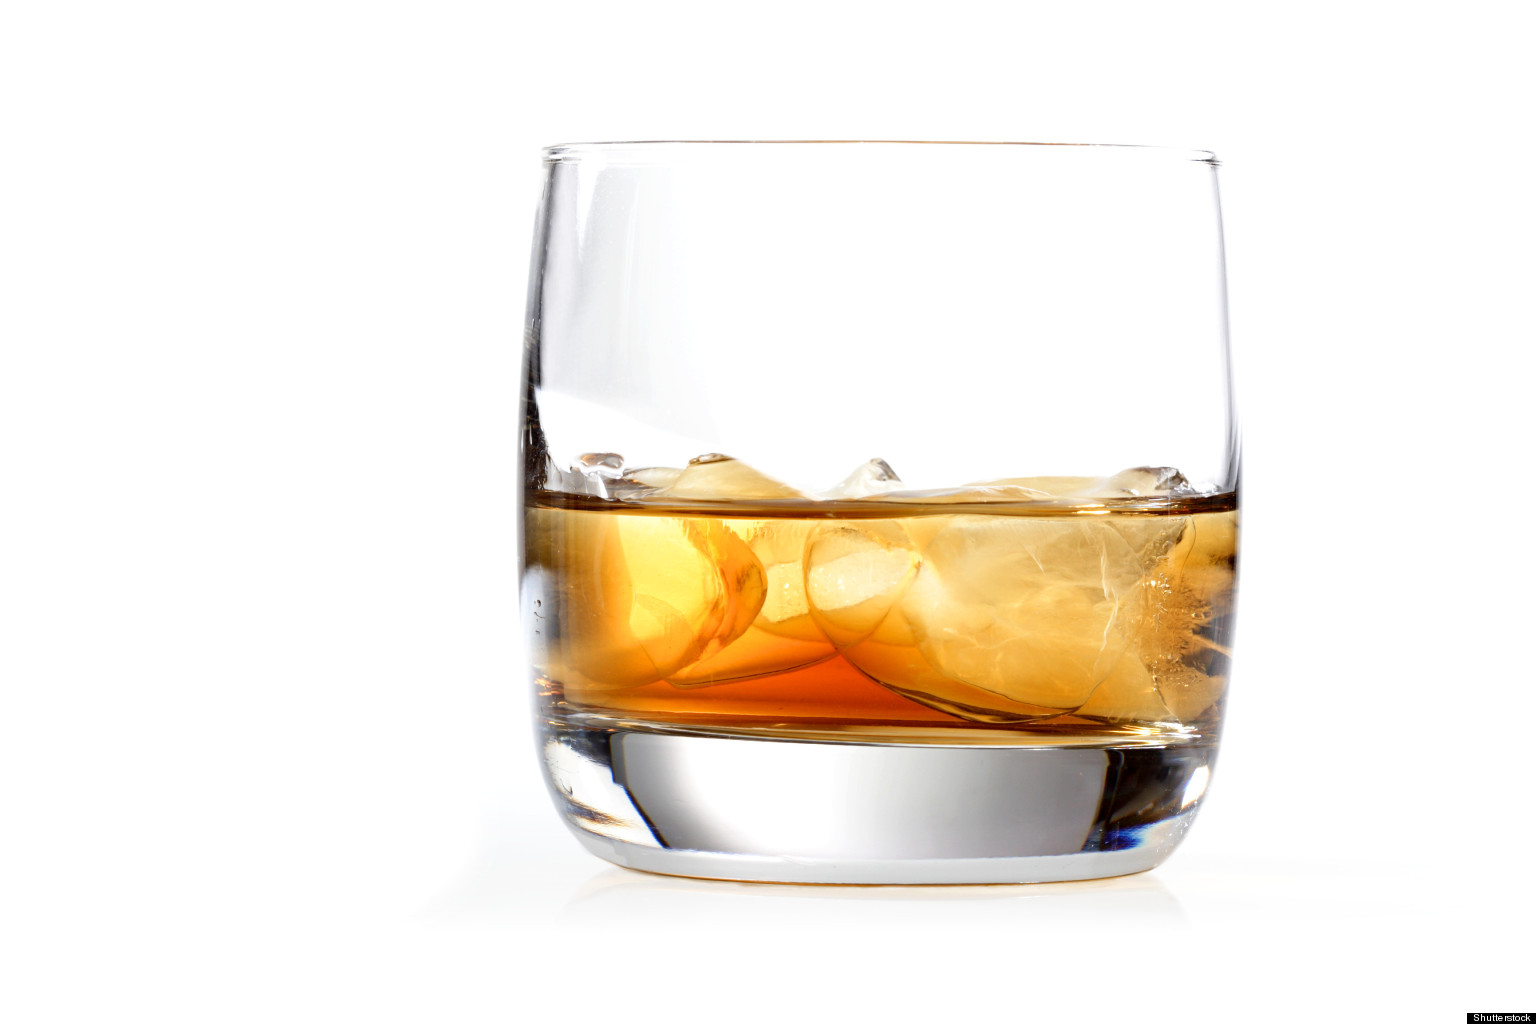 Rum Glas Ice Stones Or Neat The Best Ways To Drink Bourbon